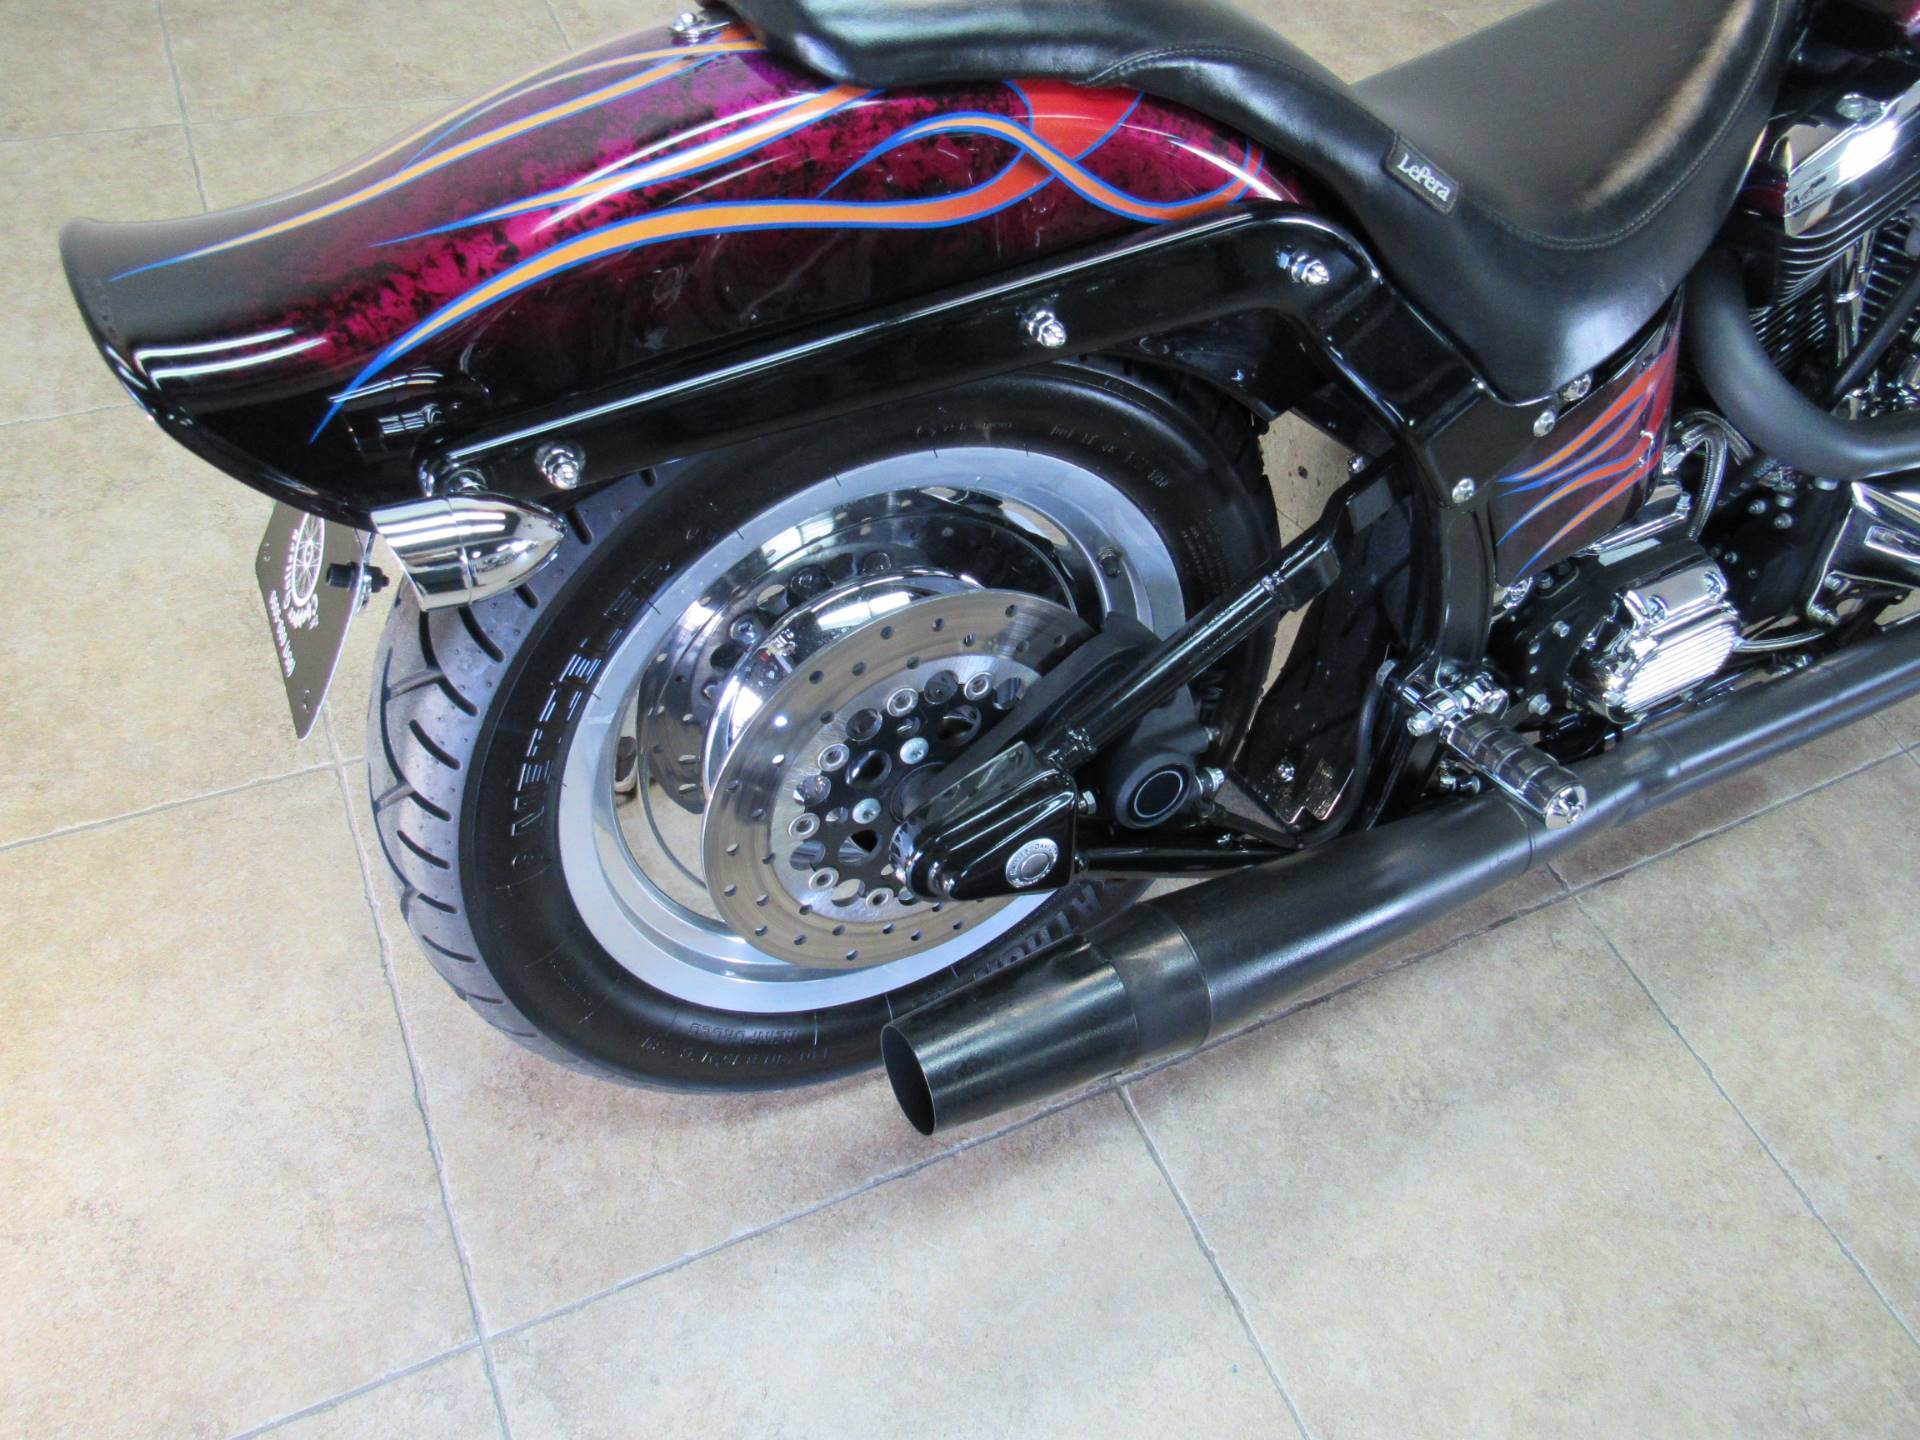 1996 Harley-Davidson softail custom in Temecula, California - Photo 7